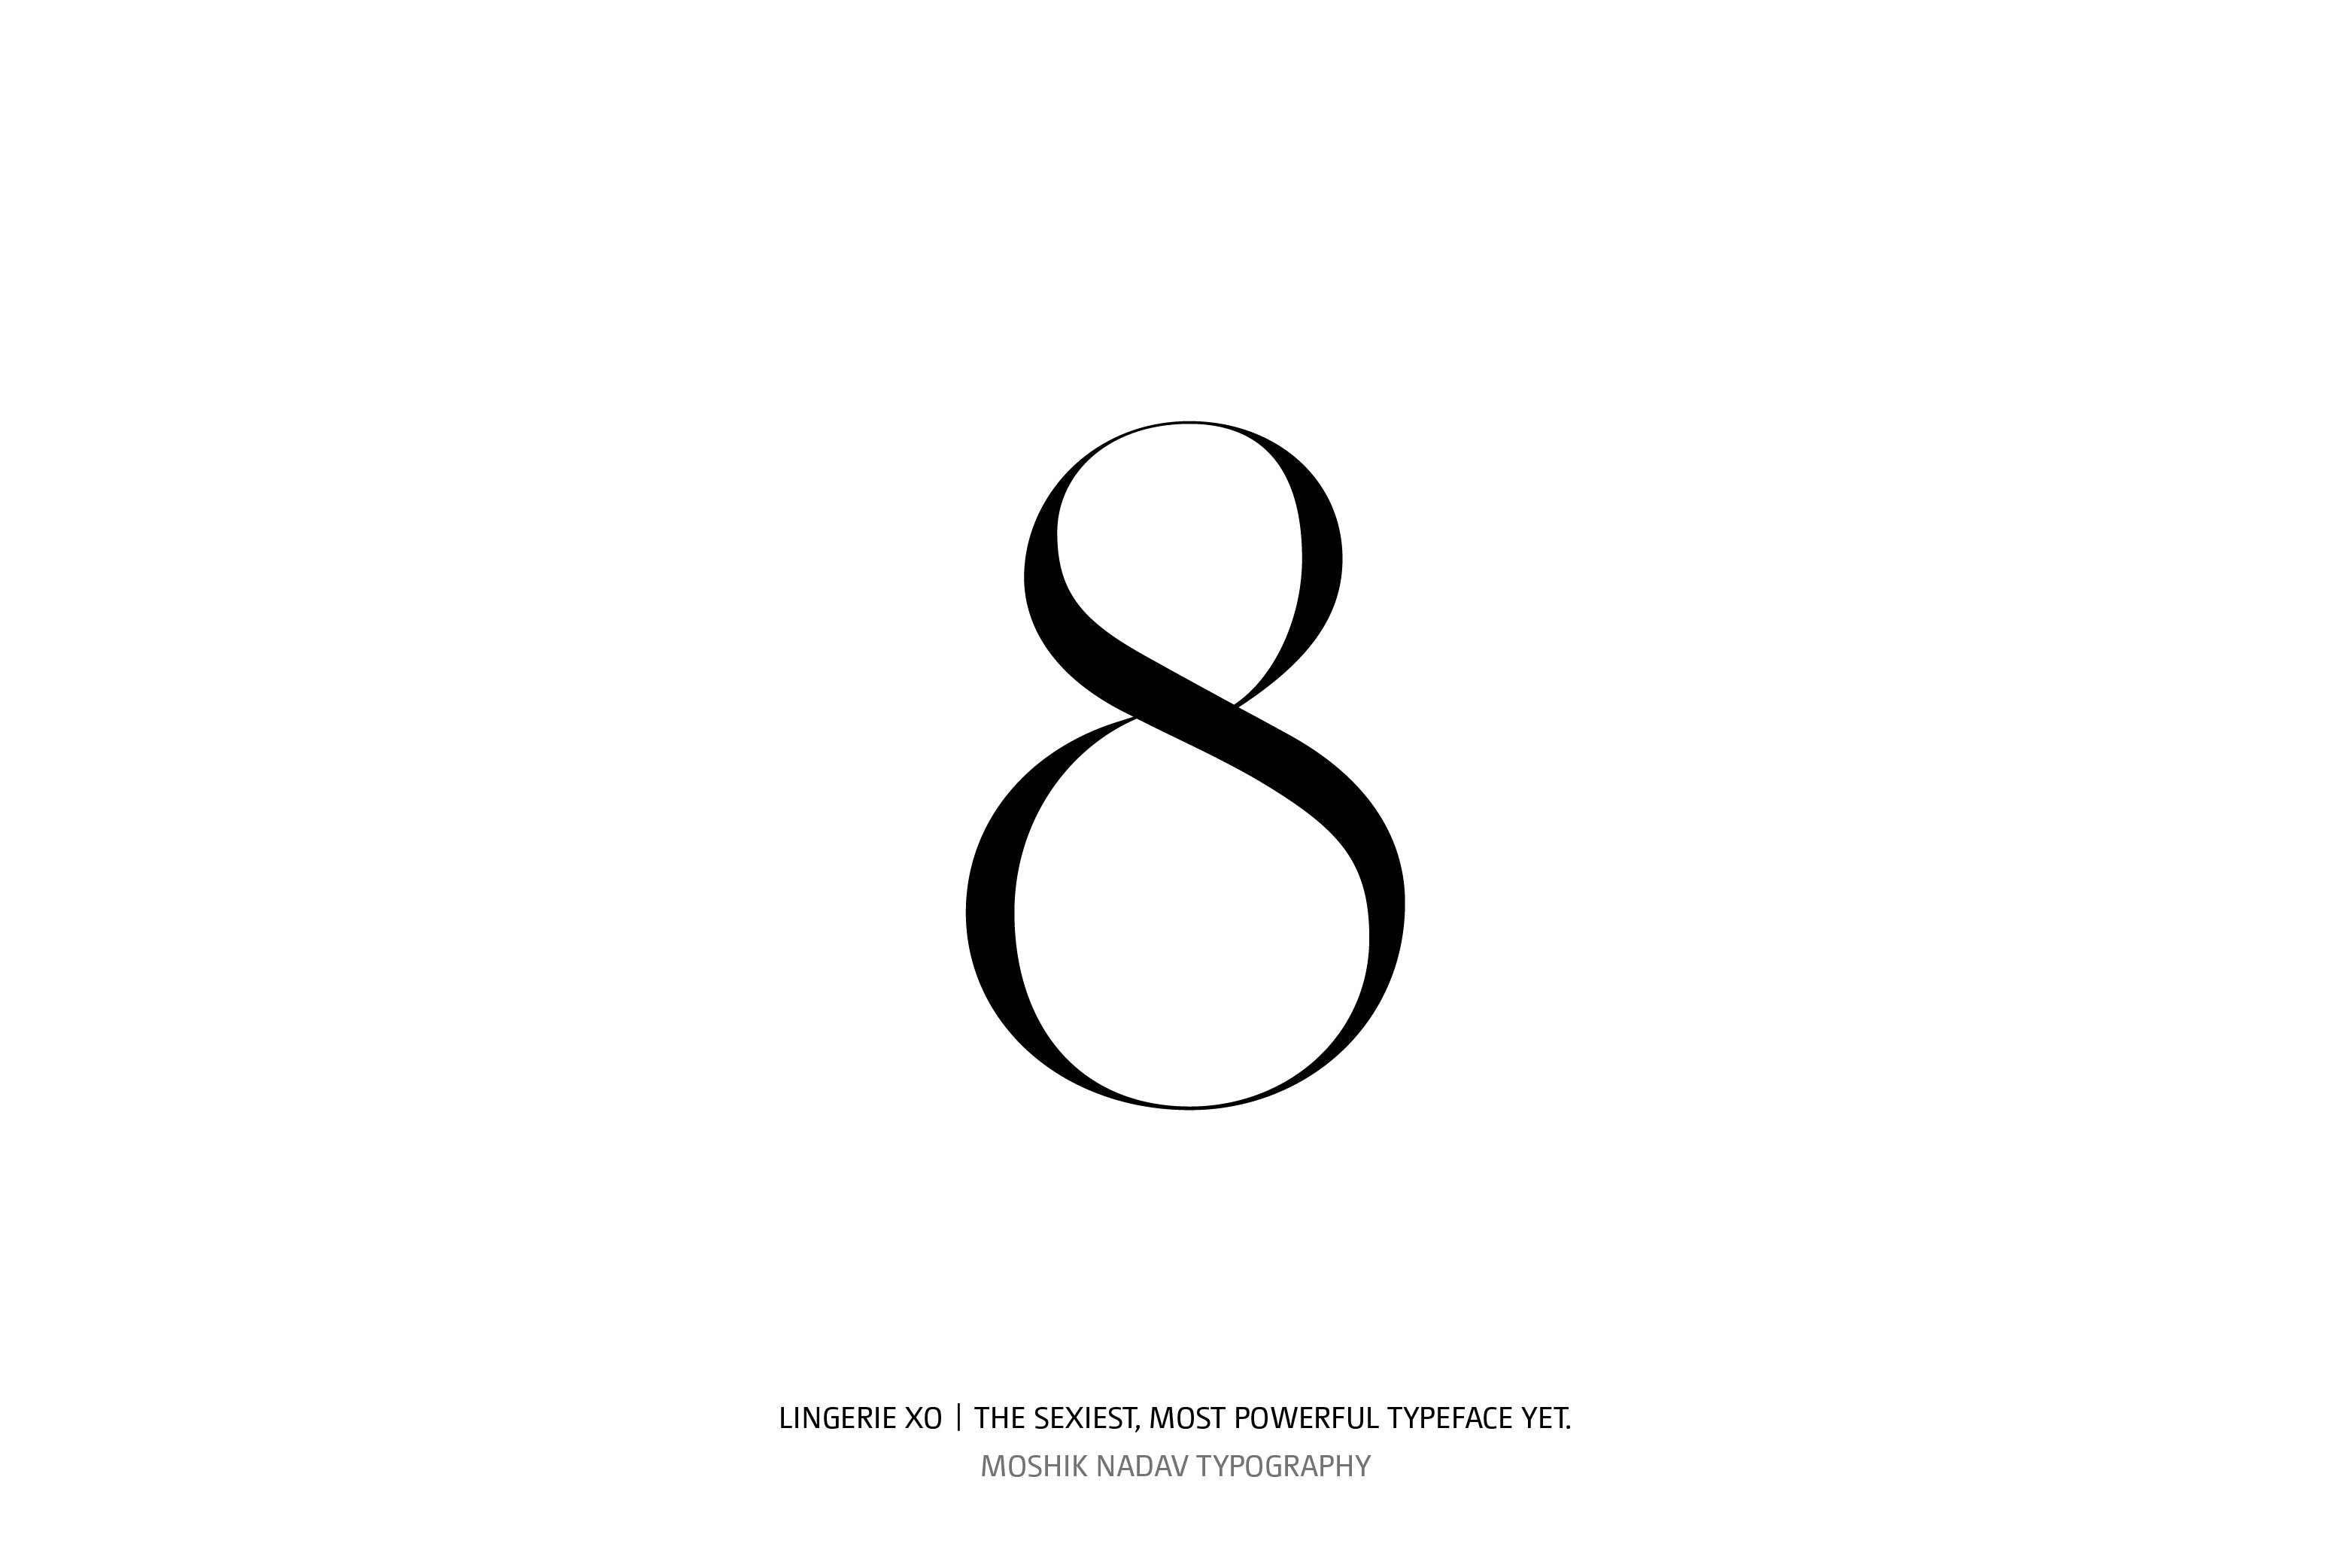 Lingerie XO Super Sexy Typeface - Moshik Nadav Typography number eight